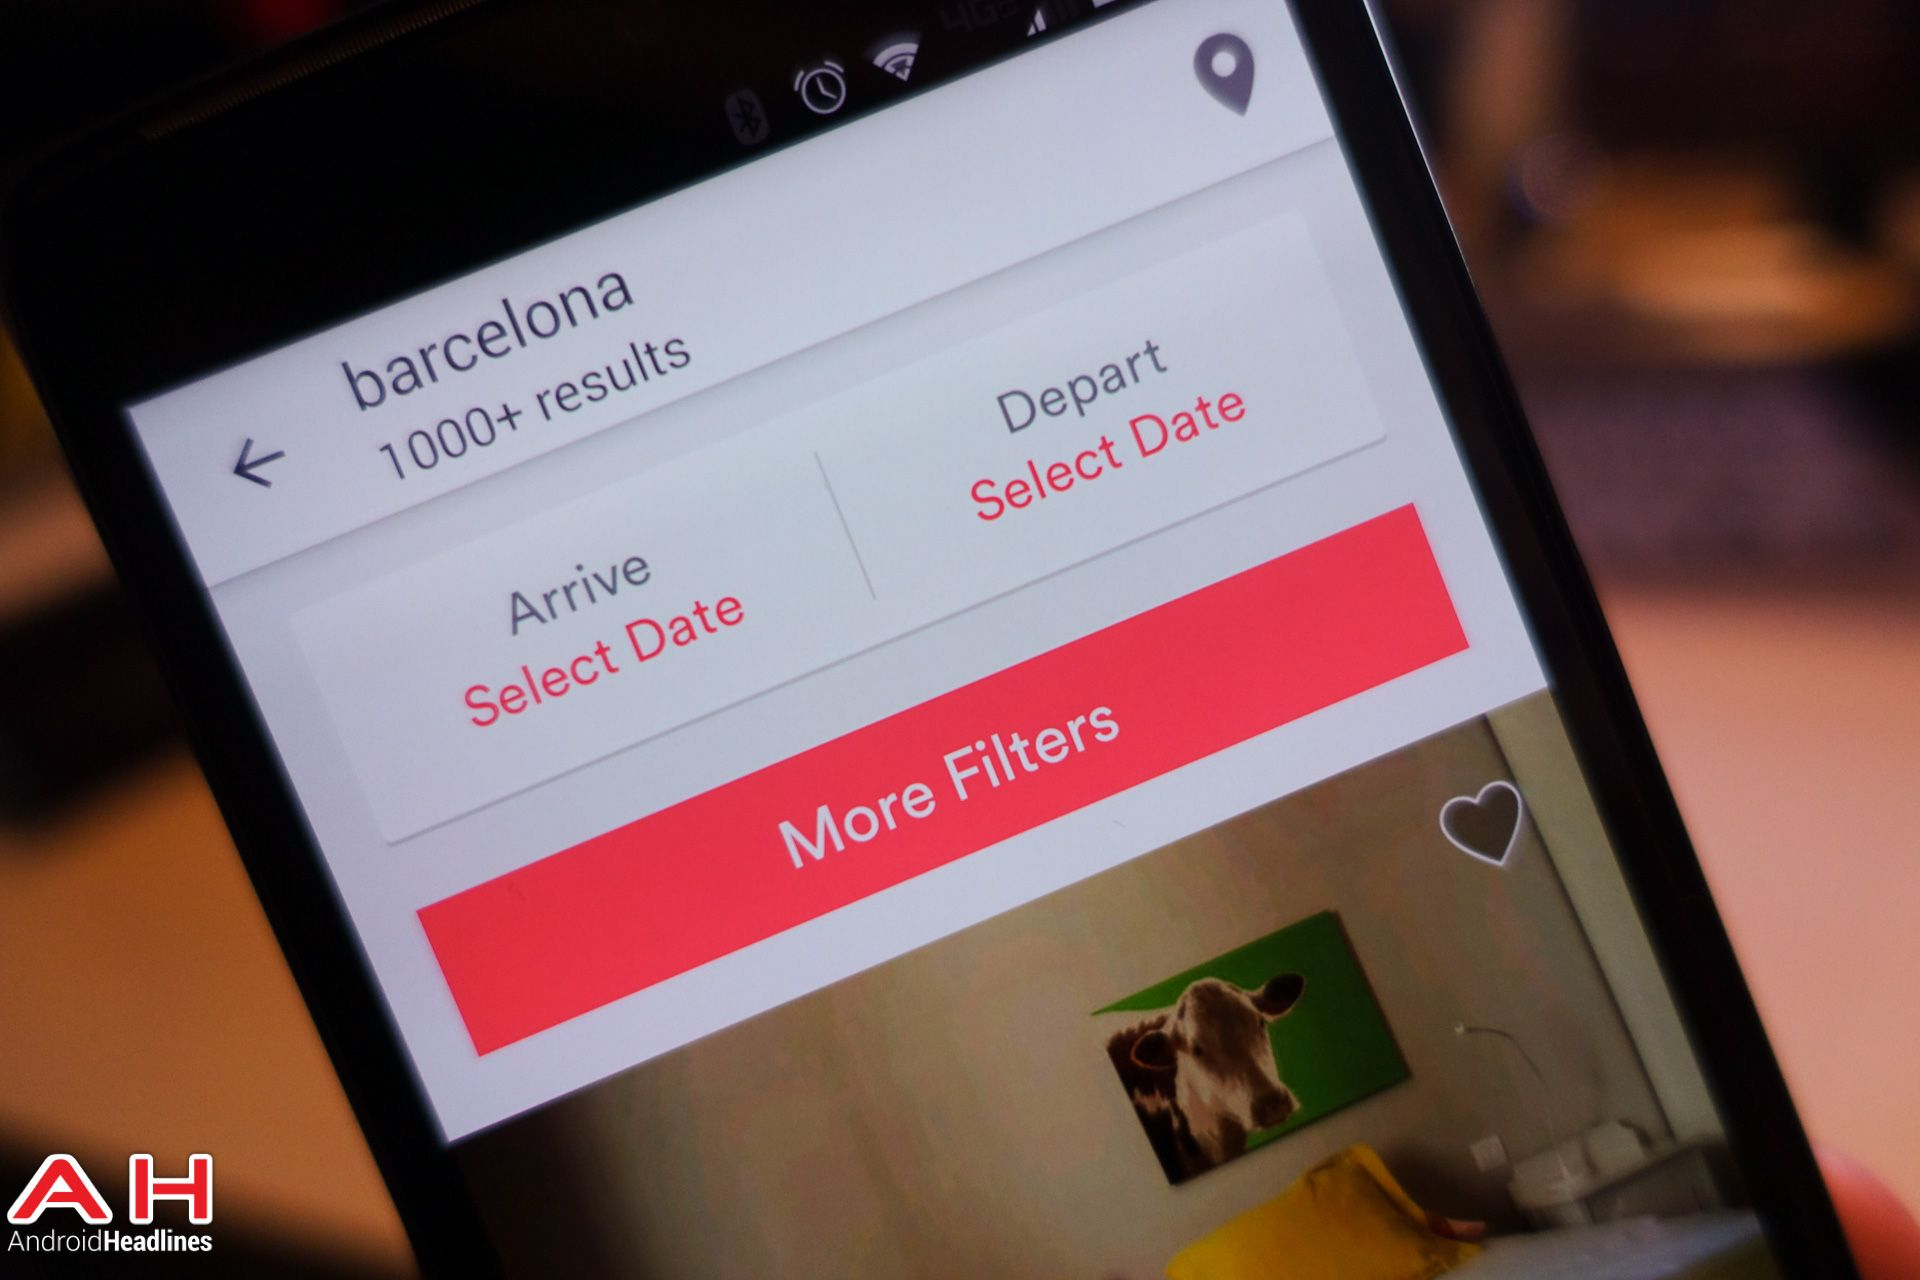 Airbnb Adds Neighborhood Guidebooks To Its Mobile App